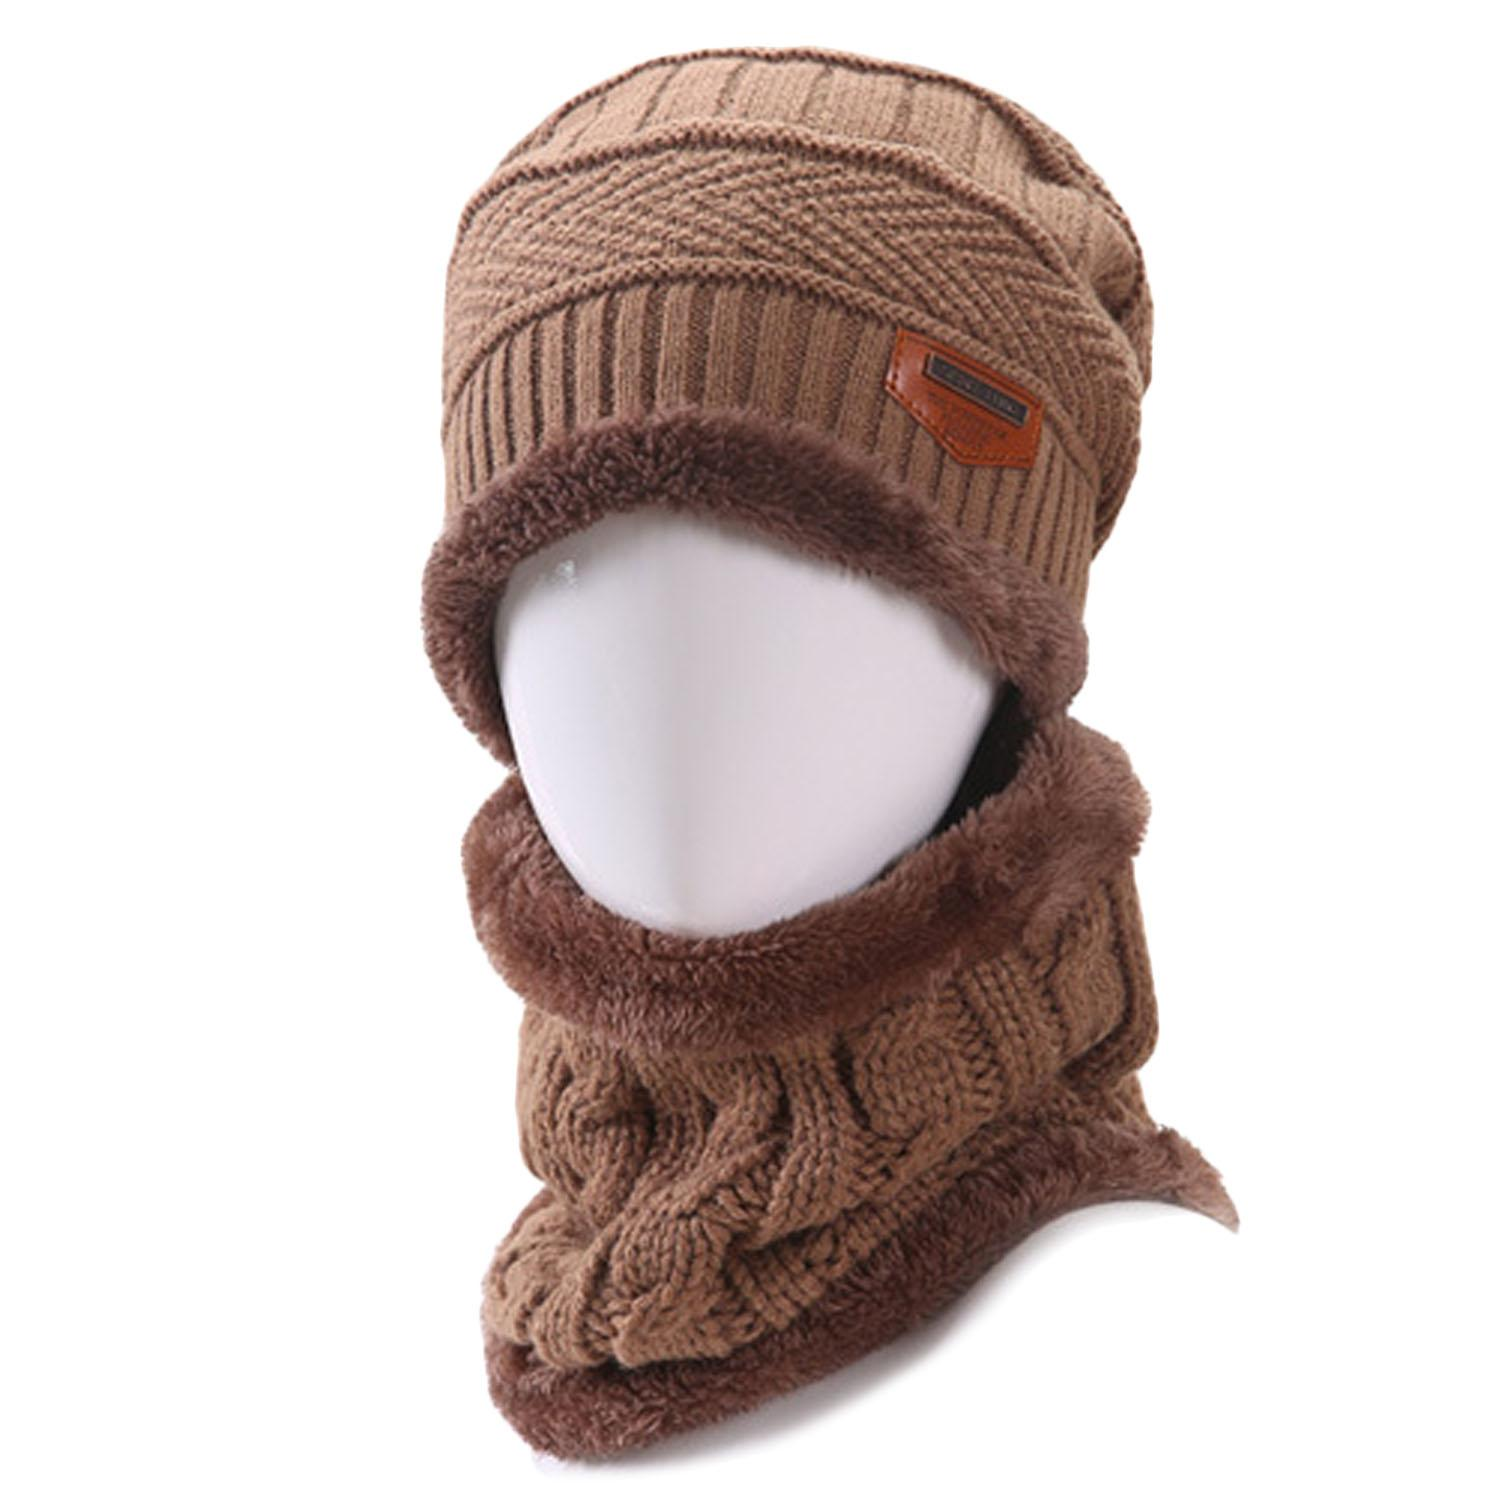 6ee6a200106 2 PCS Unisex Winter Knit Hat And Neck Warmer Scarf Set Men Women Thick  Knitted Skull